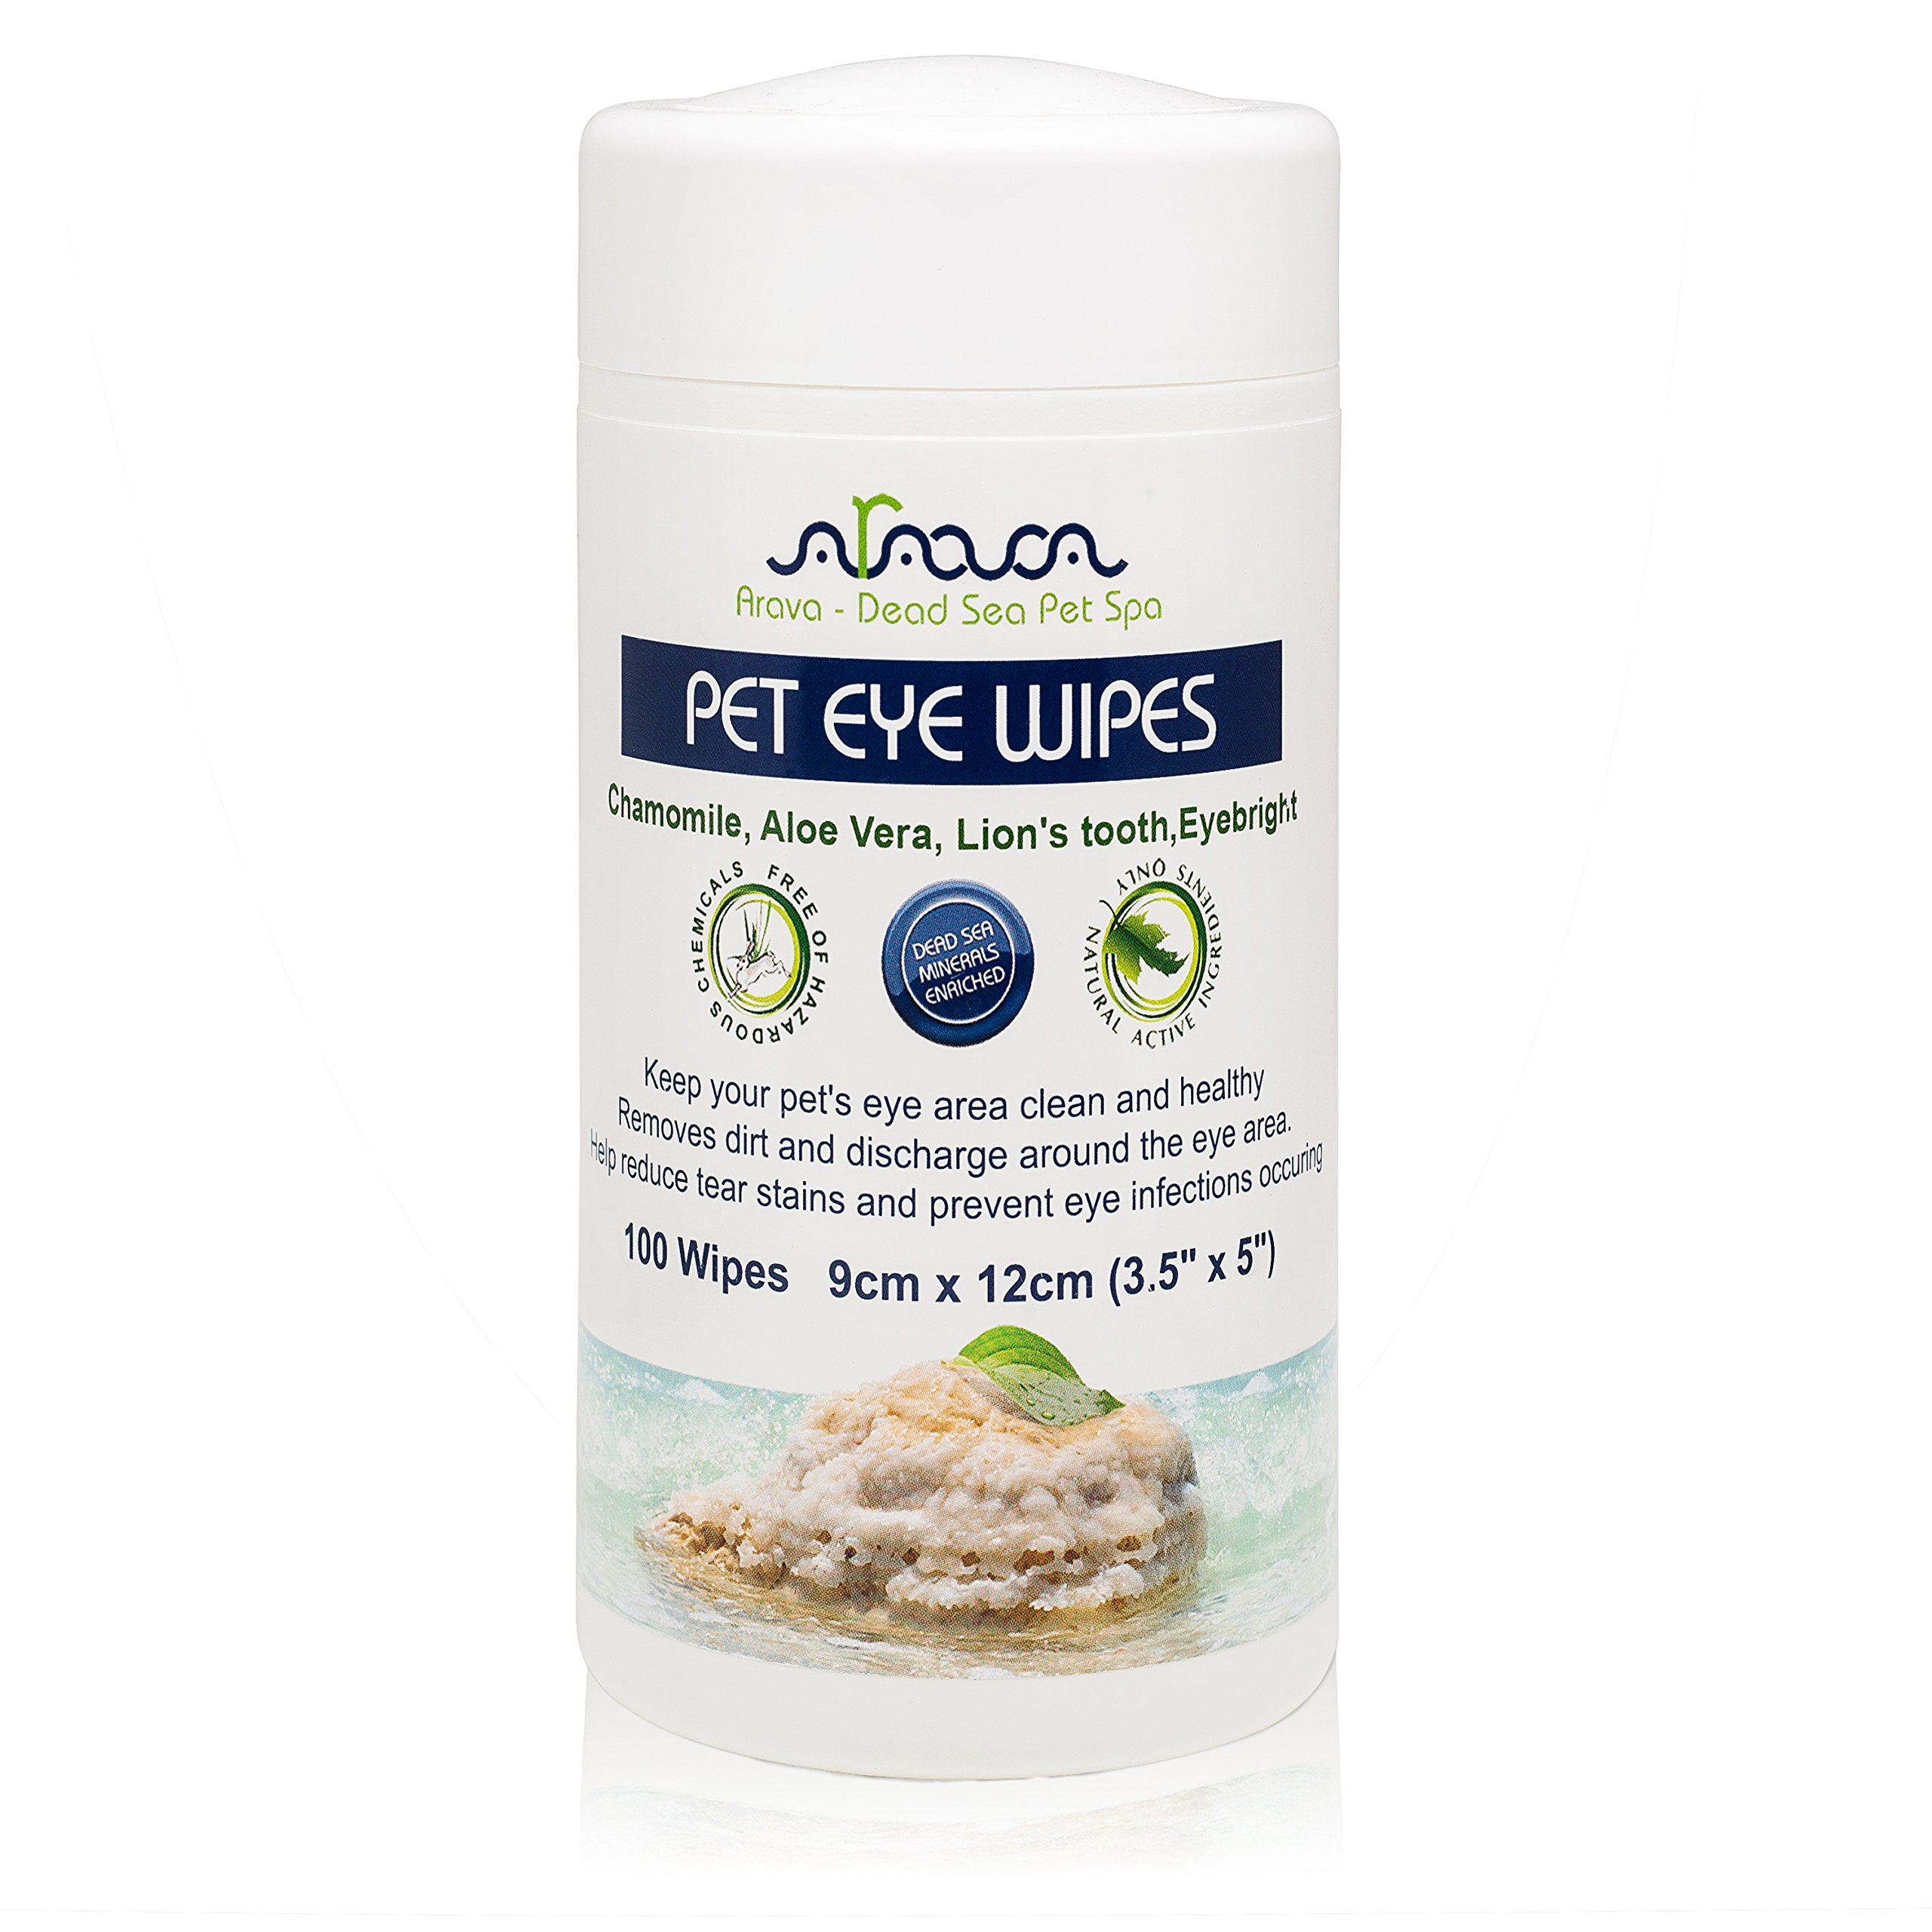 Arava Pet Eye Wipes - for Dogs Cats Puppies & Kittens - 100 Count - Natural and Aromatherapy Medicated - Removes Dirt Crust and Discharge - Prevents Tear Stain Infections & Irritations - Soft & Gentle